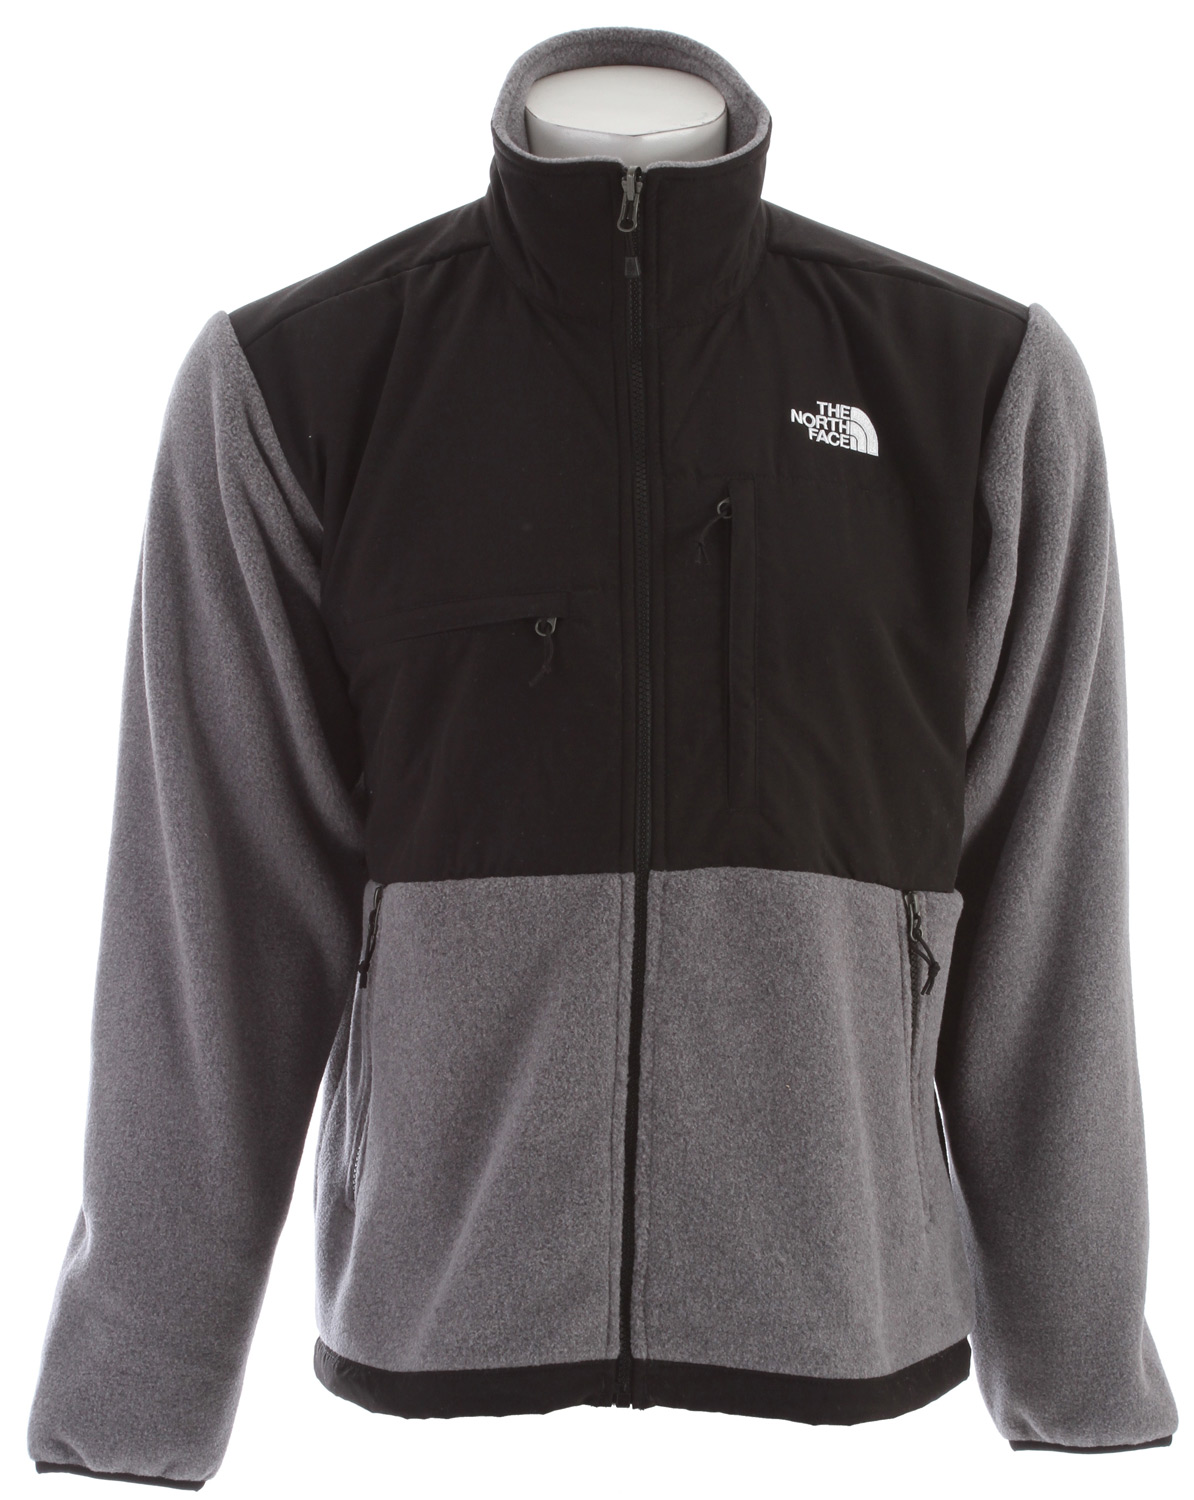 "A 100% windproof fleece gives this already comfortable and durable jacket ultimate protection from winter weather. Key Features of The North Face Denali Fleece: Avg Weight: 842 g (29.7 oz) Center Back: 28"" Fabric: body: recycled Polartec 300 Series fleece with DWR (bluesign approved fabric) abrasion: laundered two-ply nylon (bluesign approved fabric) Standard fit Zip-in compatible Abrasion-reinforced shoulders and elbows Napoleon chest pocket Horizontal chest pocket Two hand pockets Elastic- bound cuffs Pit-zip vents Hem cinch-cord Fixed hood *3XL TNF Black and R Charcoal Grey Heather only - $124.95"